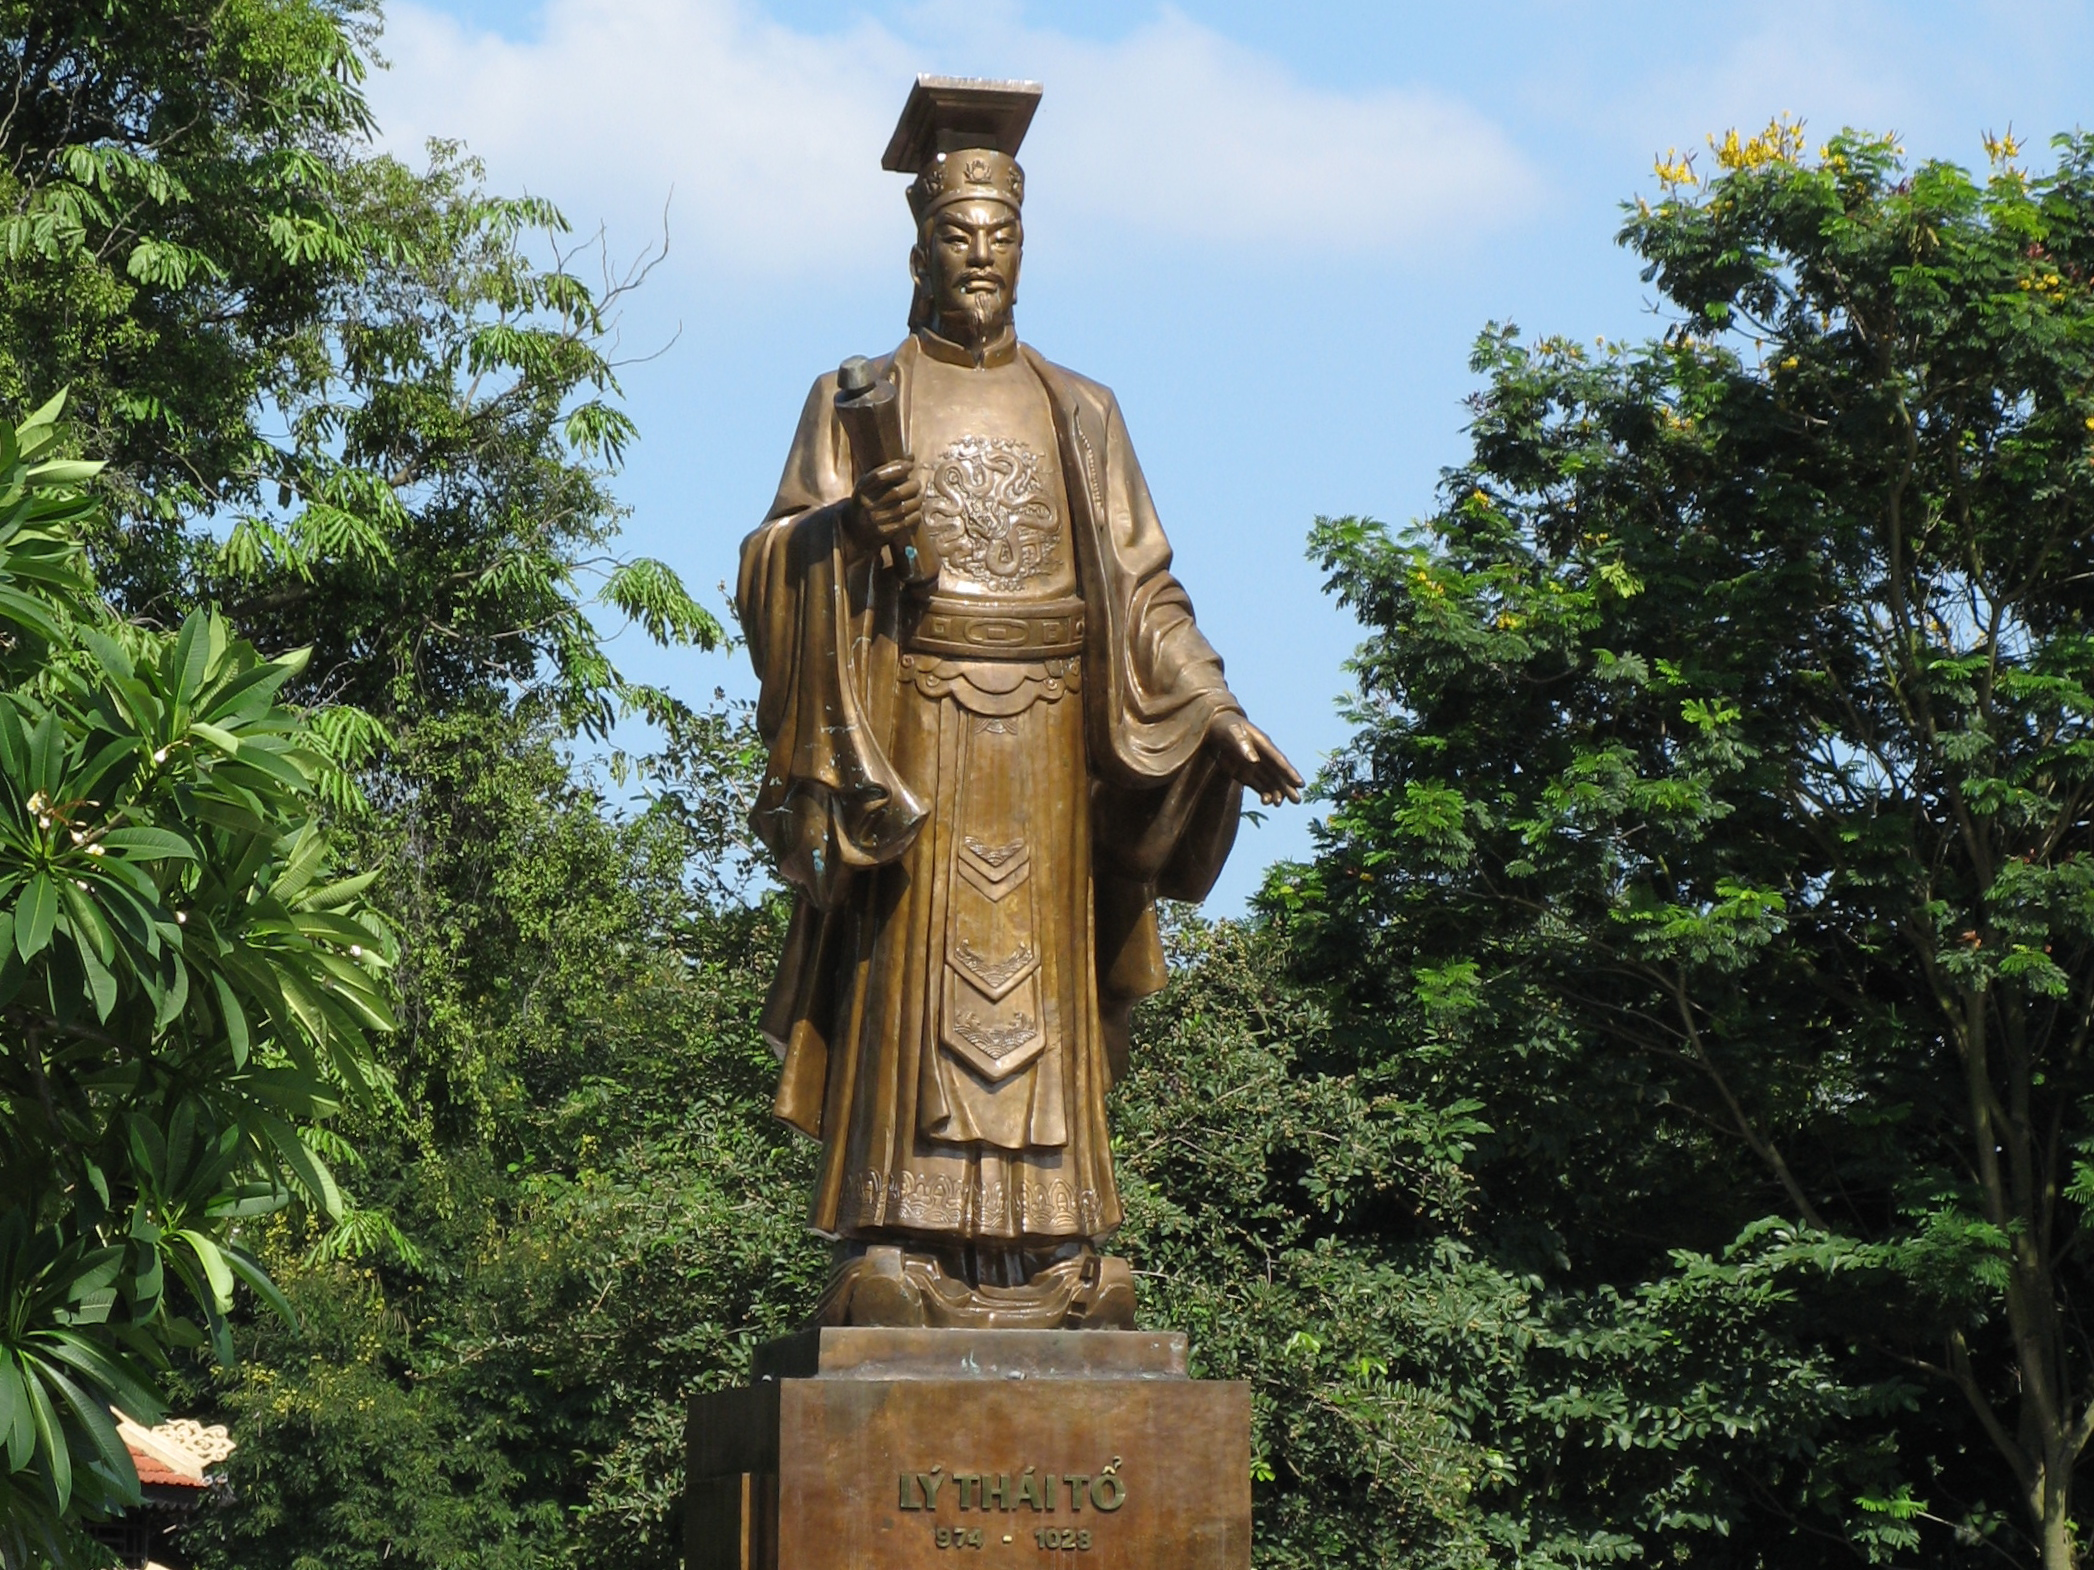 emperor lý thai tổ made thăng long hanoi his capital